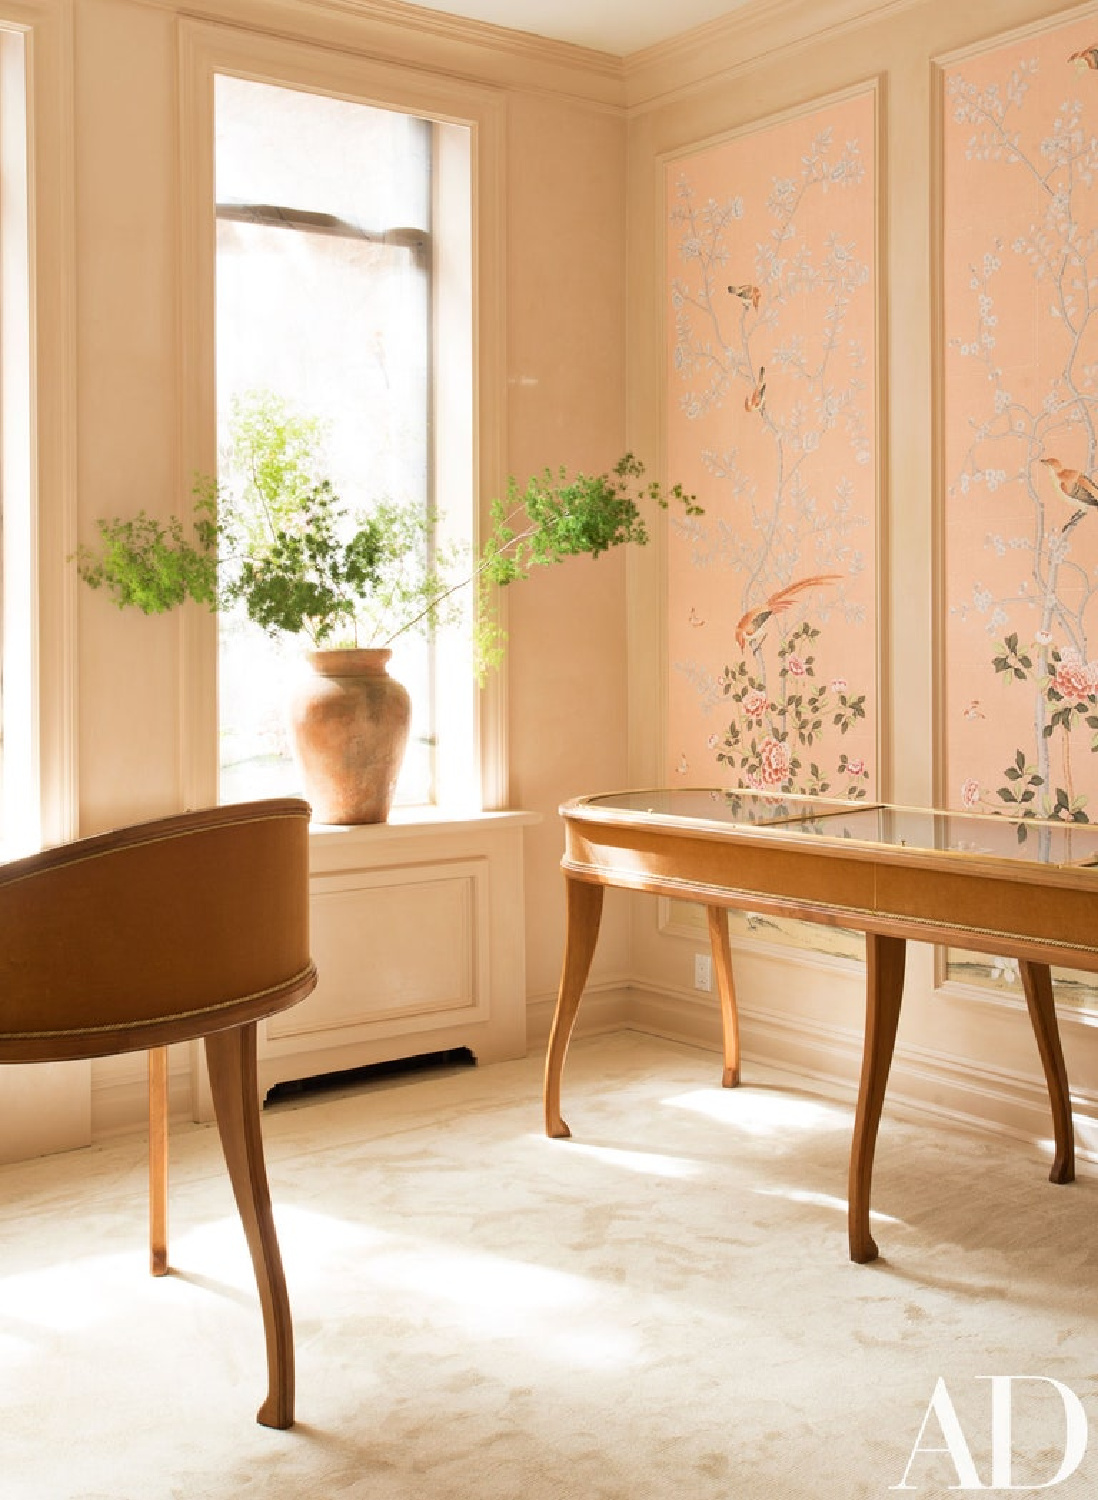 The South Salon features the decorative 'Earlham' Chinoiserie design; hand painted onto both wallpaper and silk blinds. Lauren Santo Domingo's Moda Operandi showroom in NYC. Come see the Best Sophisticated, Chic and Subtle Pink Paint Colors